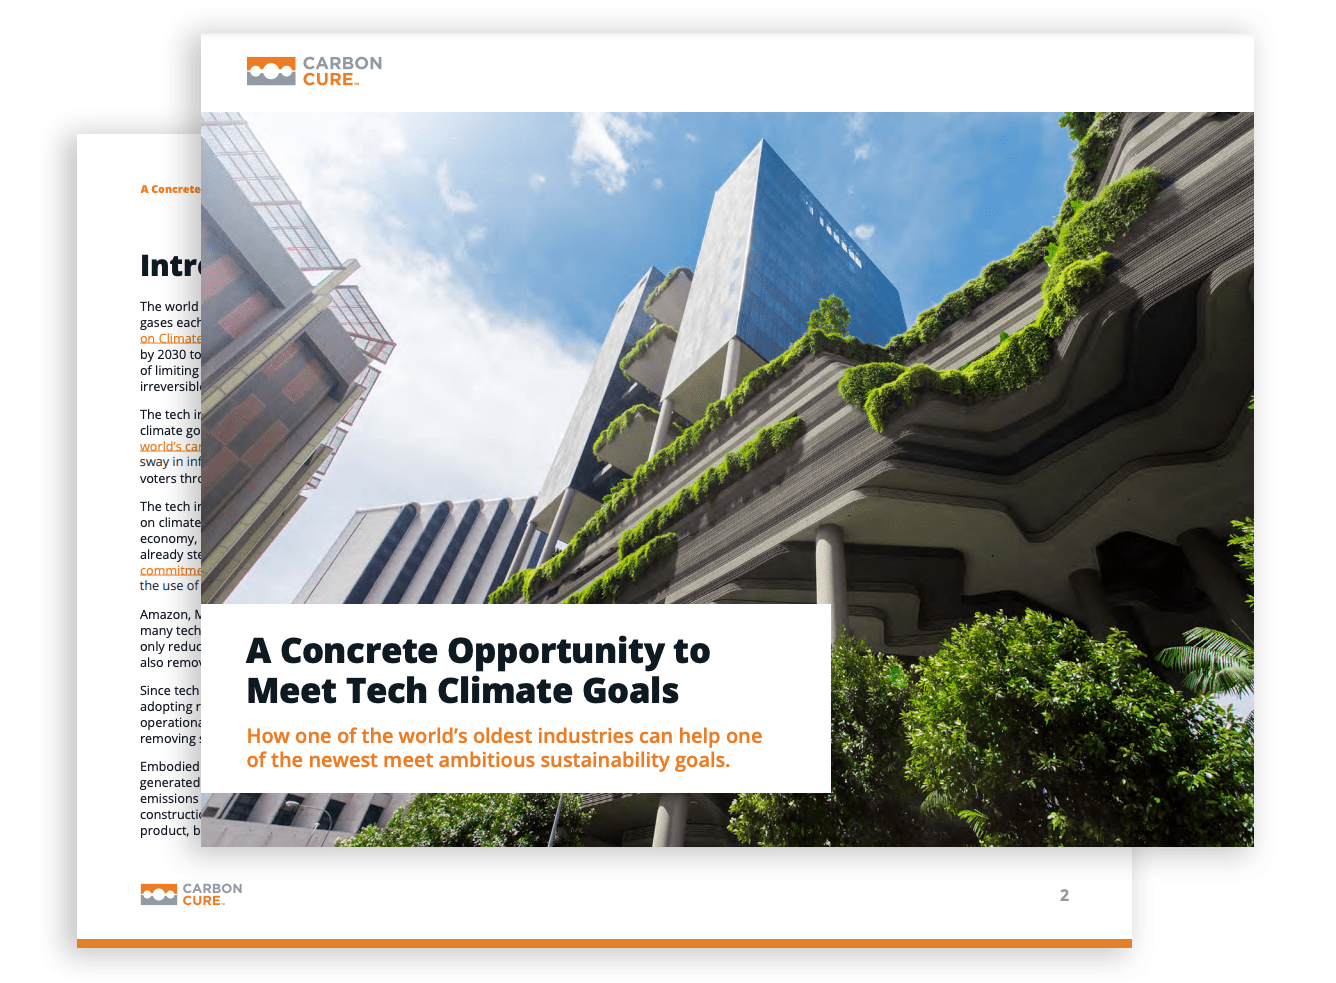 A Concrete Opportunity to Meet Tech Climate Goals